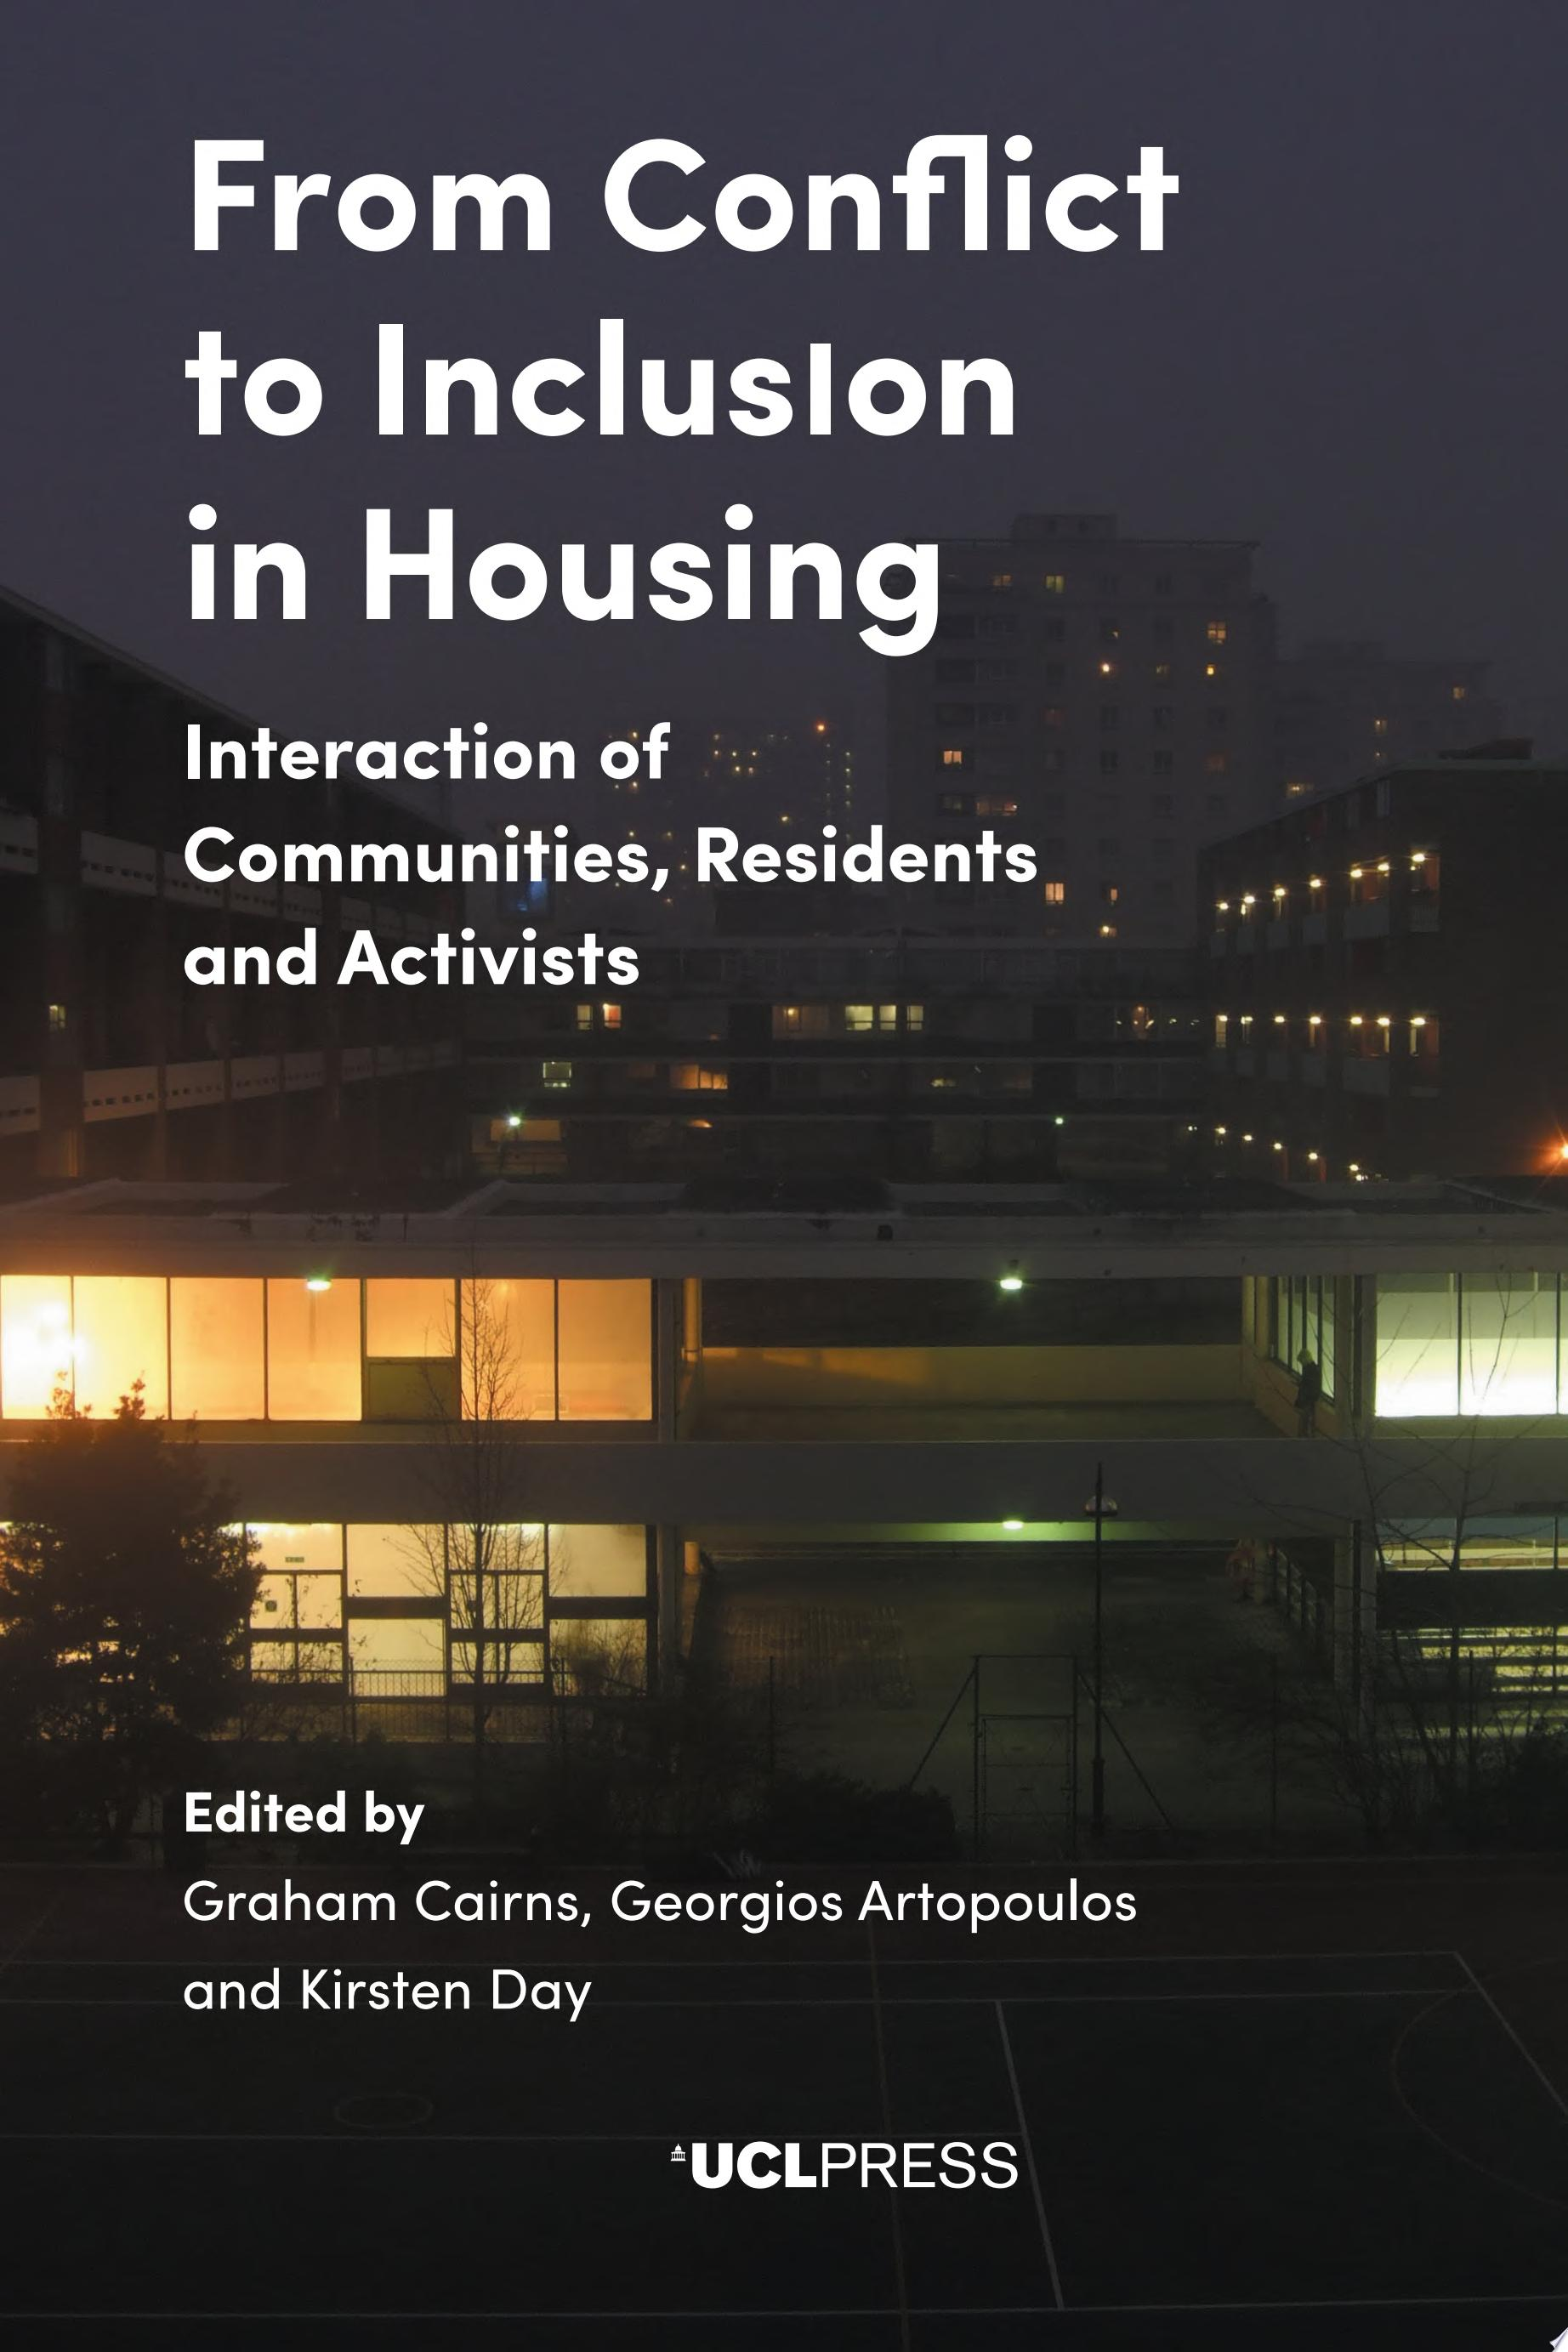 From Conflict to Inclusion in Housing